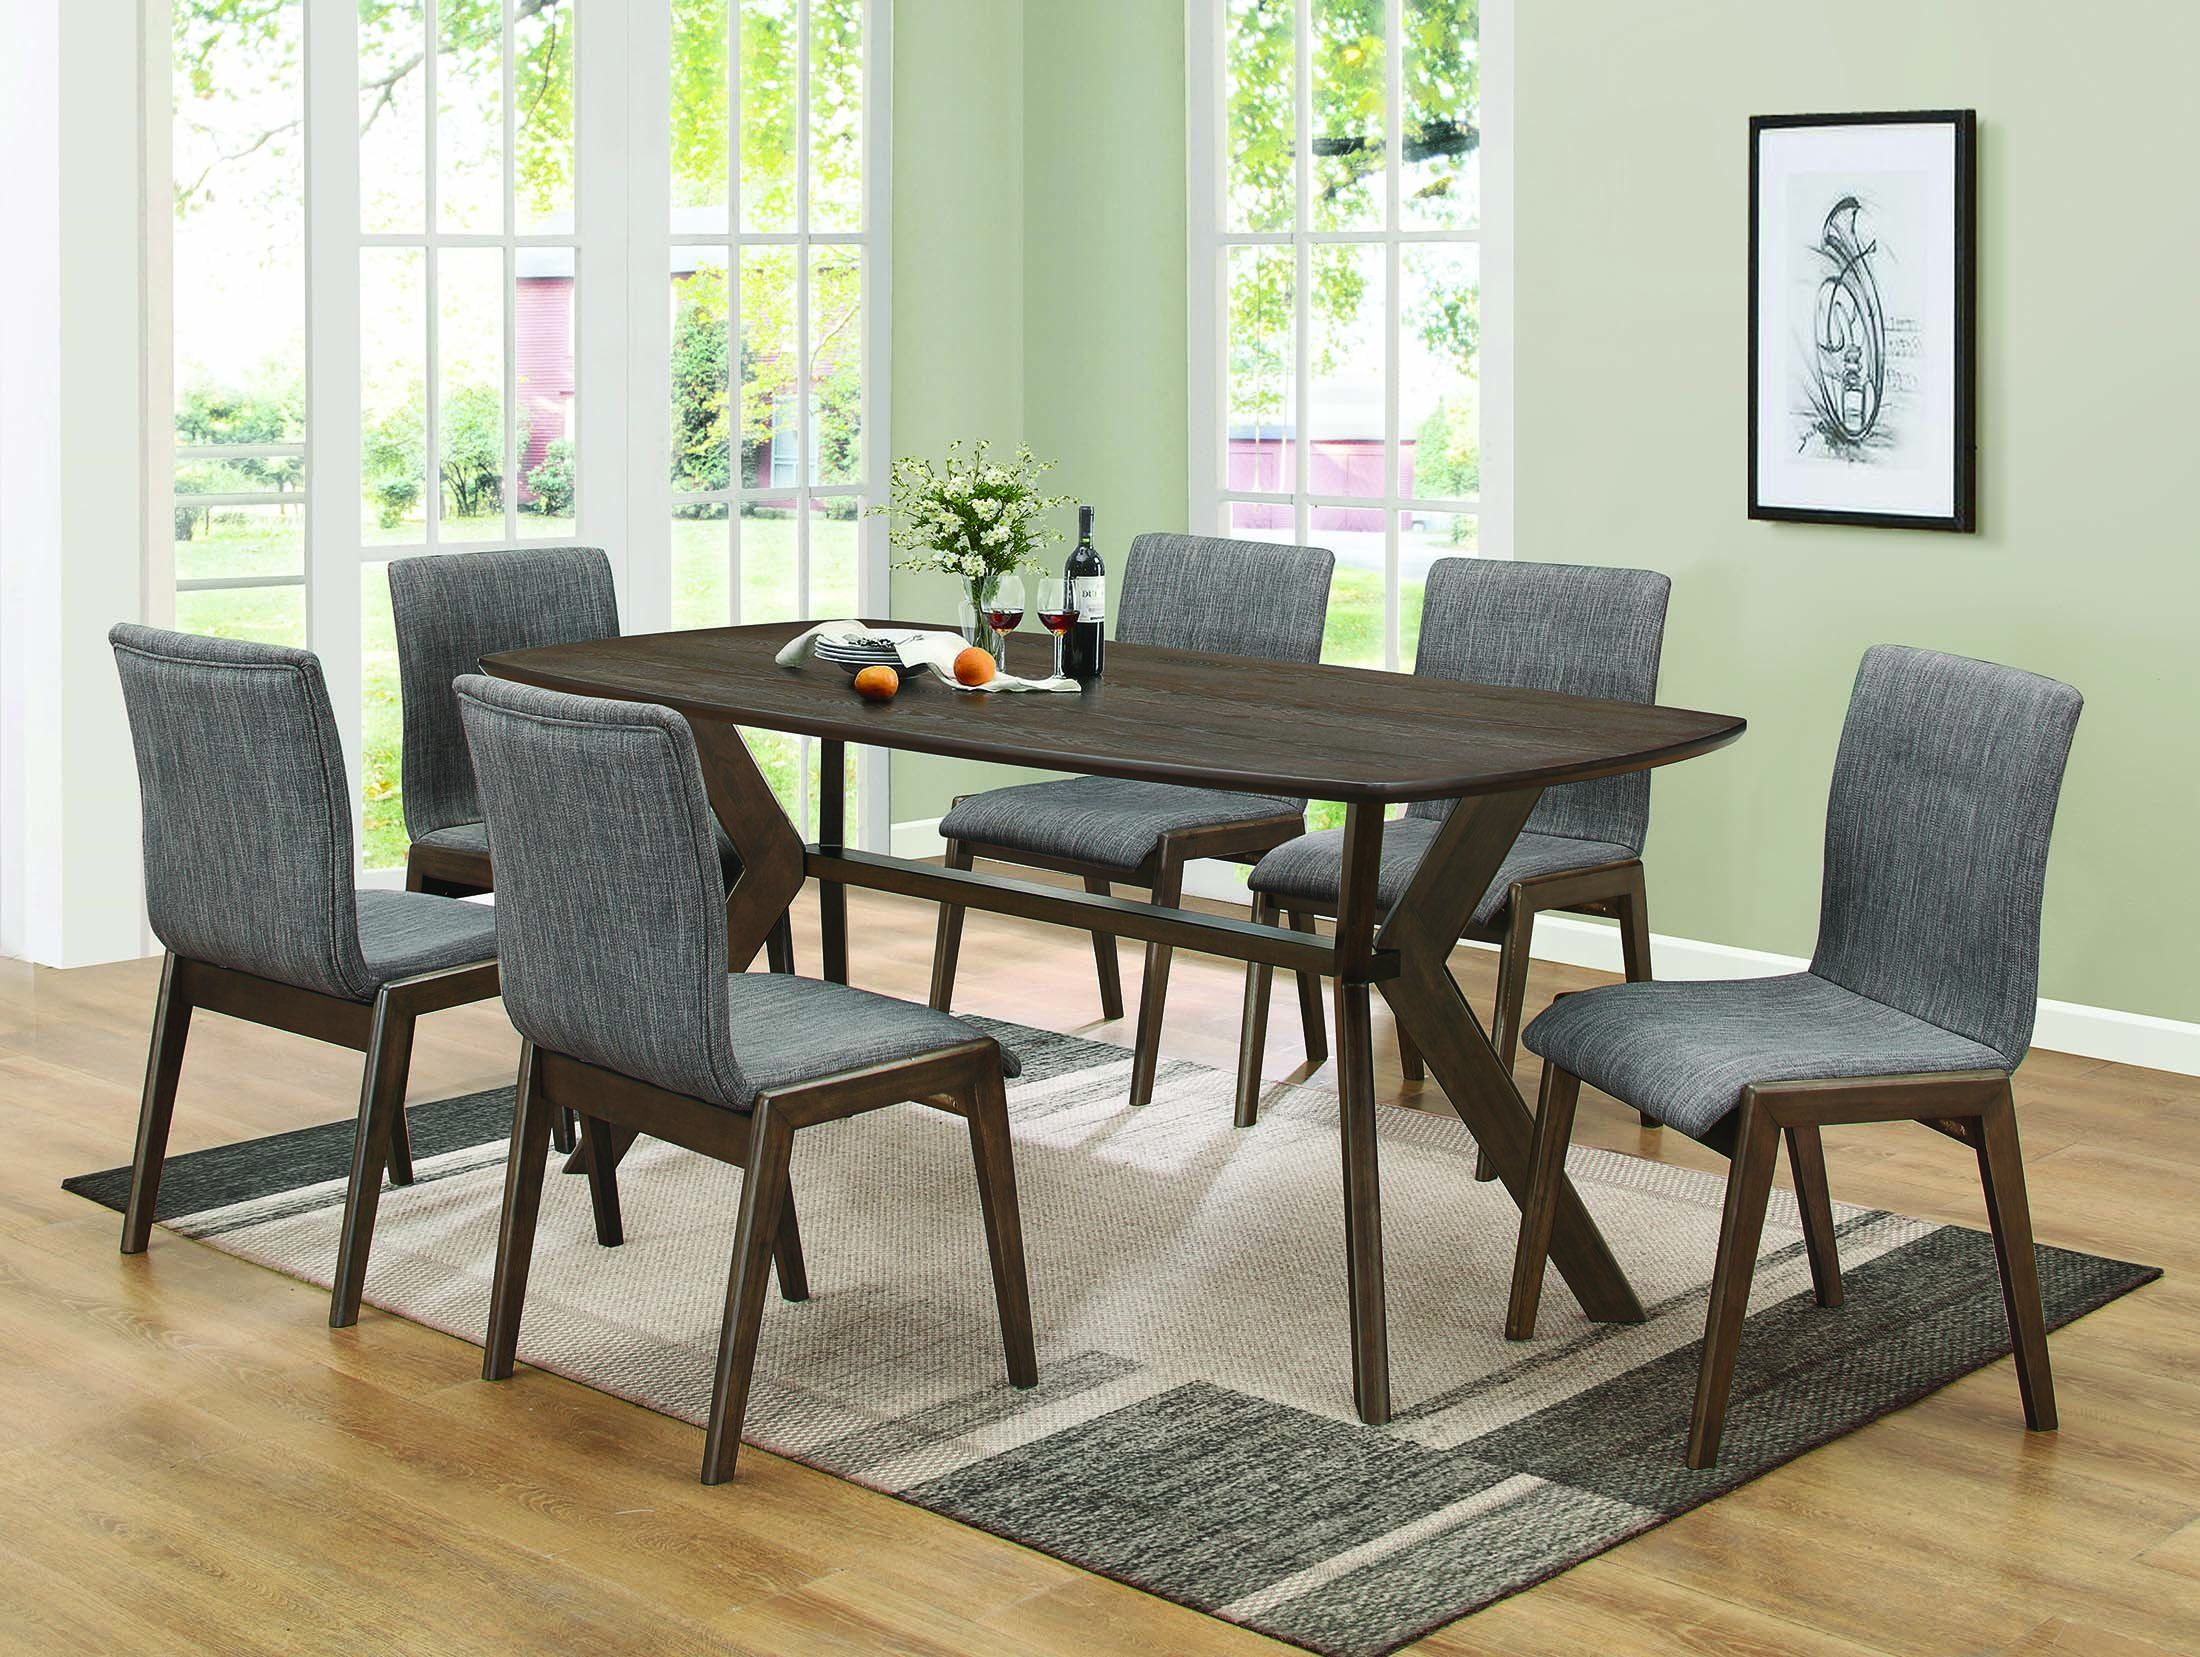 Mcbride Retro Dining Room Table  Retro Dining Rooms And Products Fascinating Retro Dining Room Tables Design Decoration